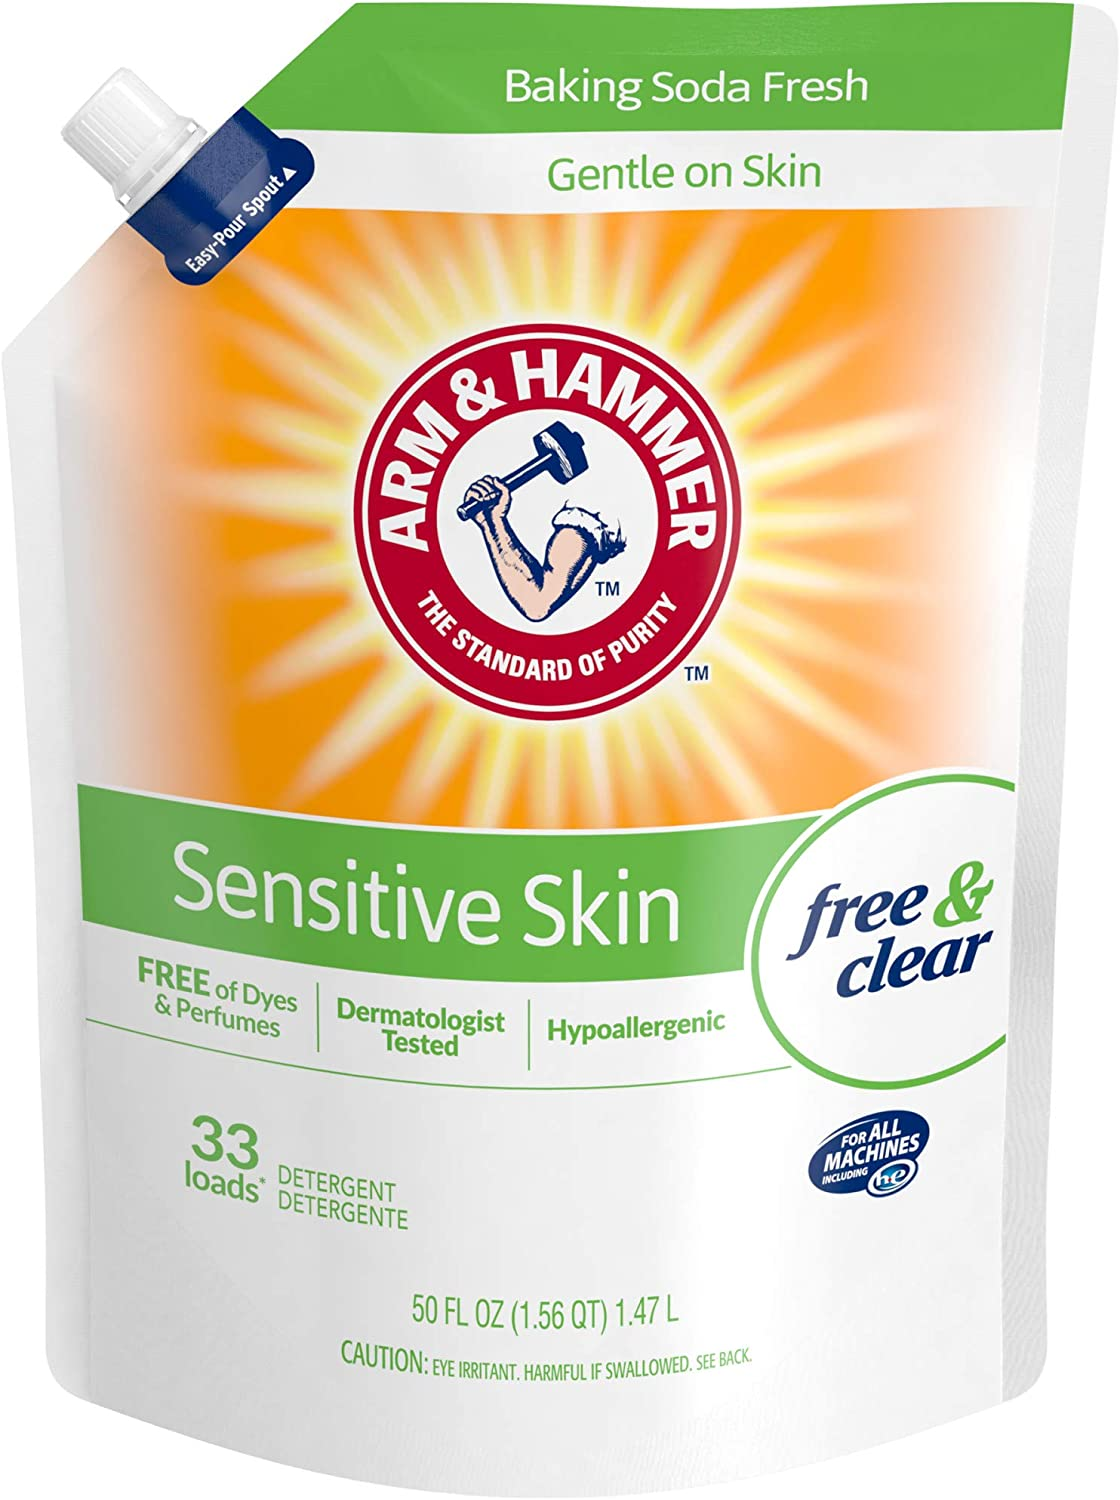 Arm & Hammer Sensitive Skin Free & Clear, 99 Loads Total Laundry Detergent Pouches, 3 pack, 50 Fl oz each